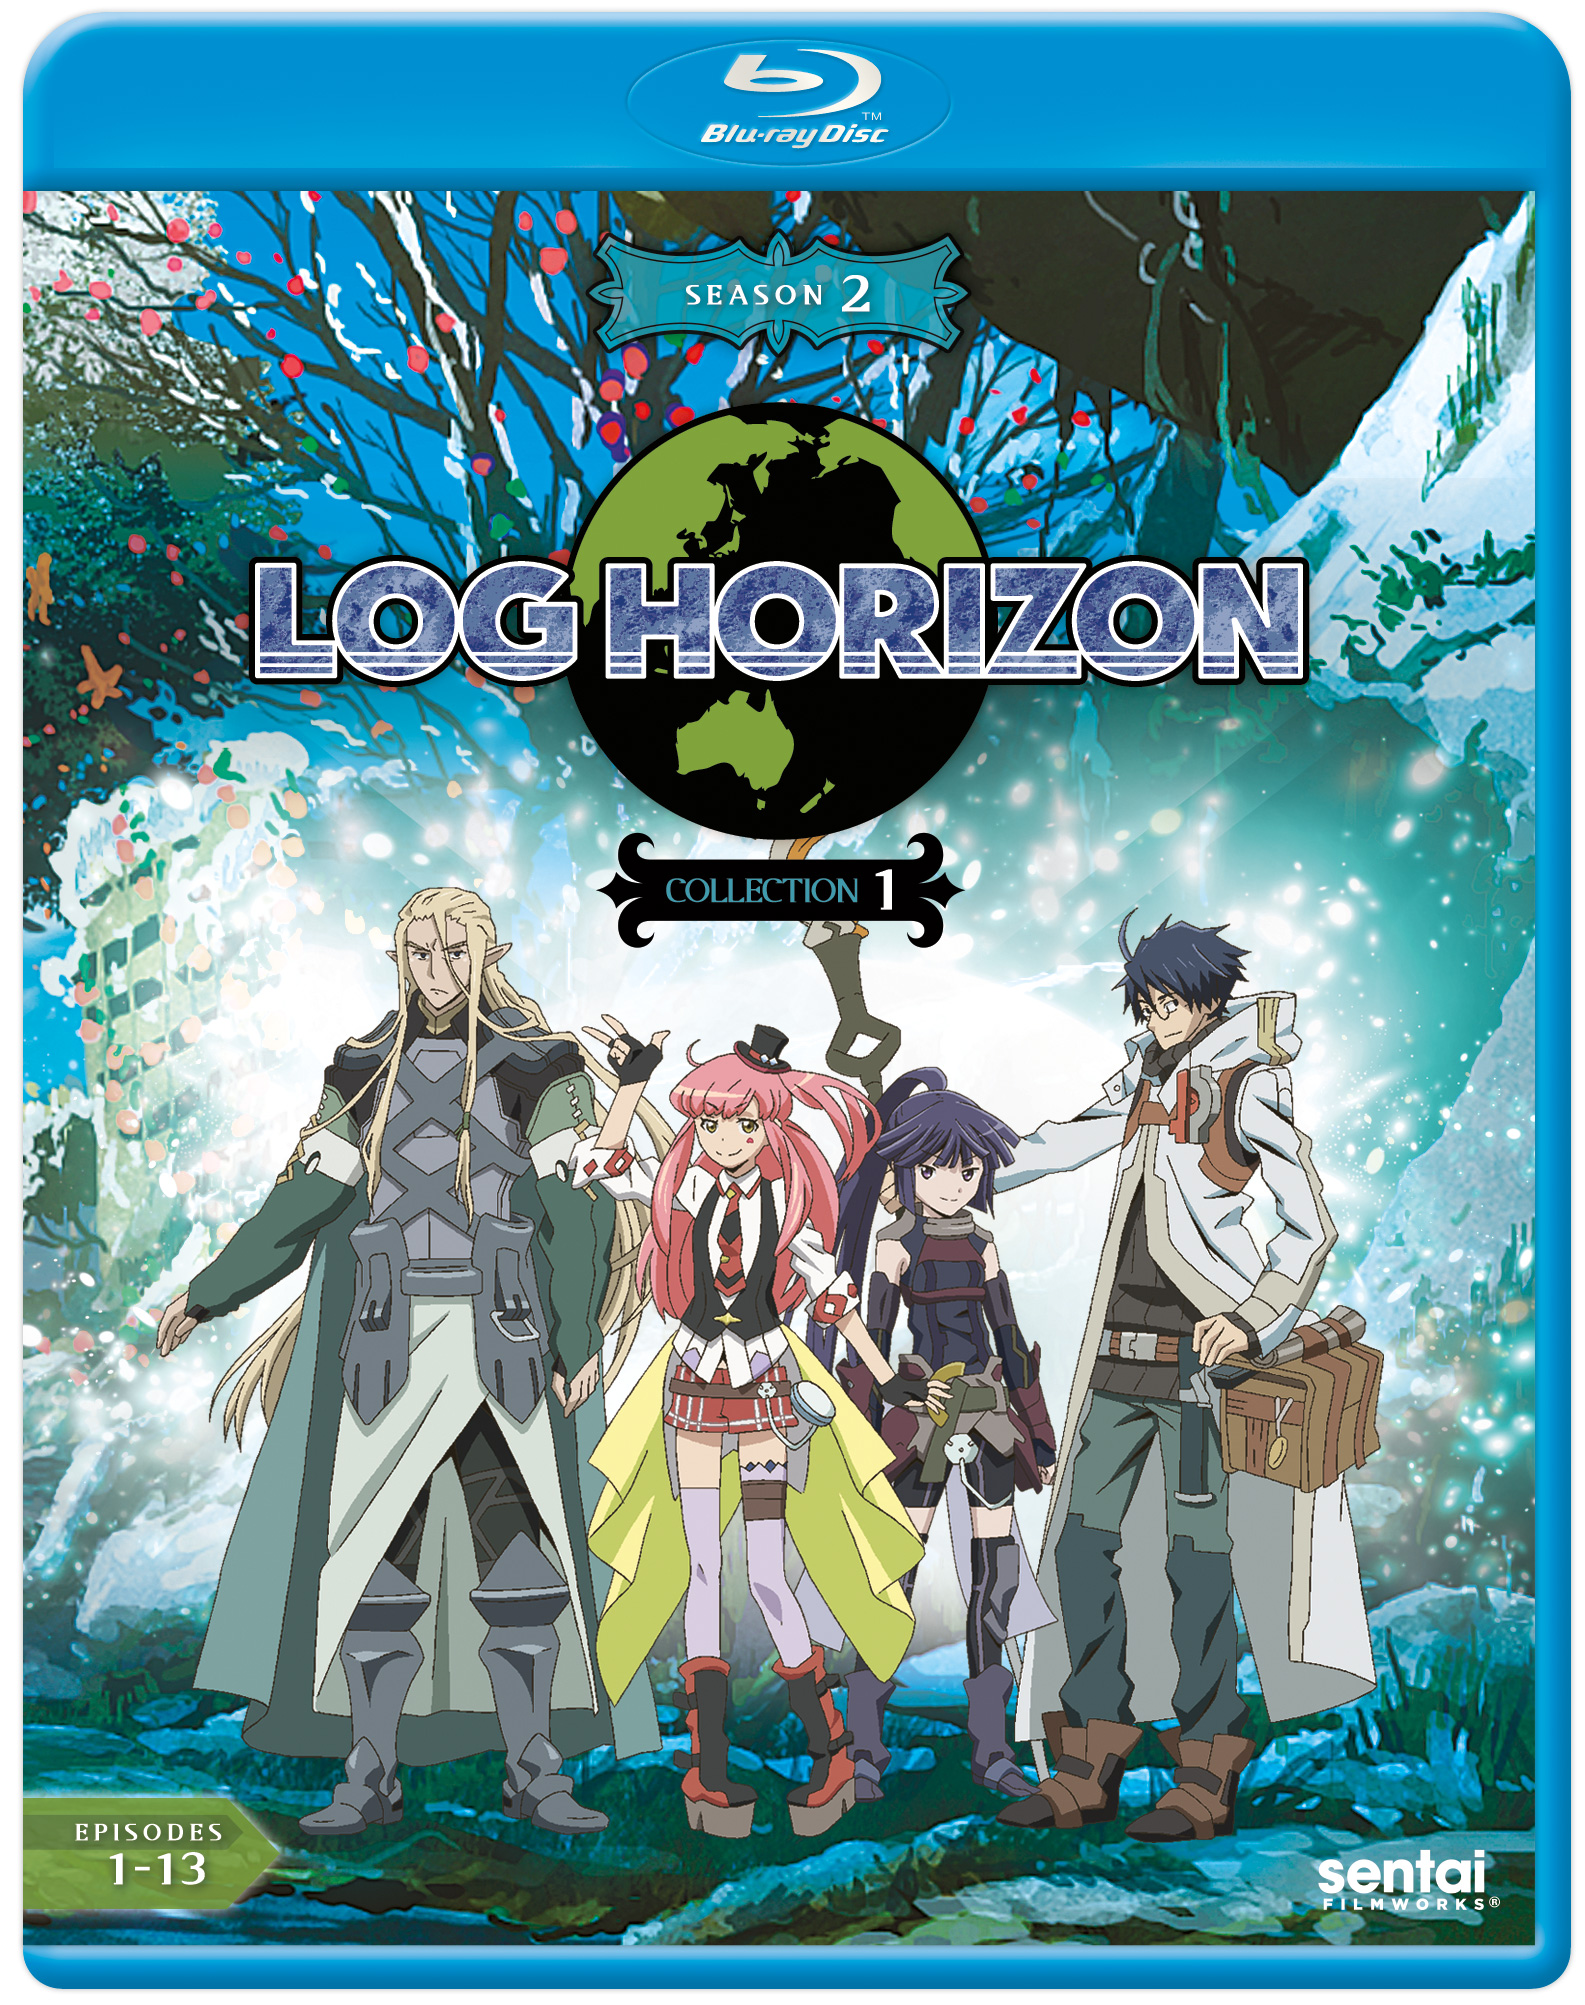 Log Horizon 2 Collection 1 Blu-ray 814131017888